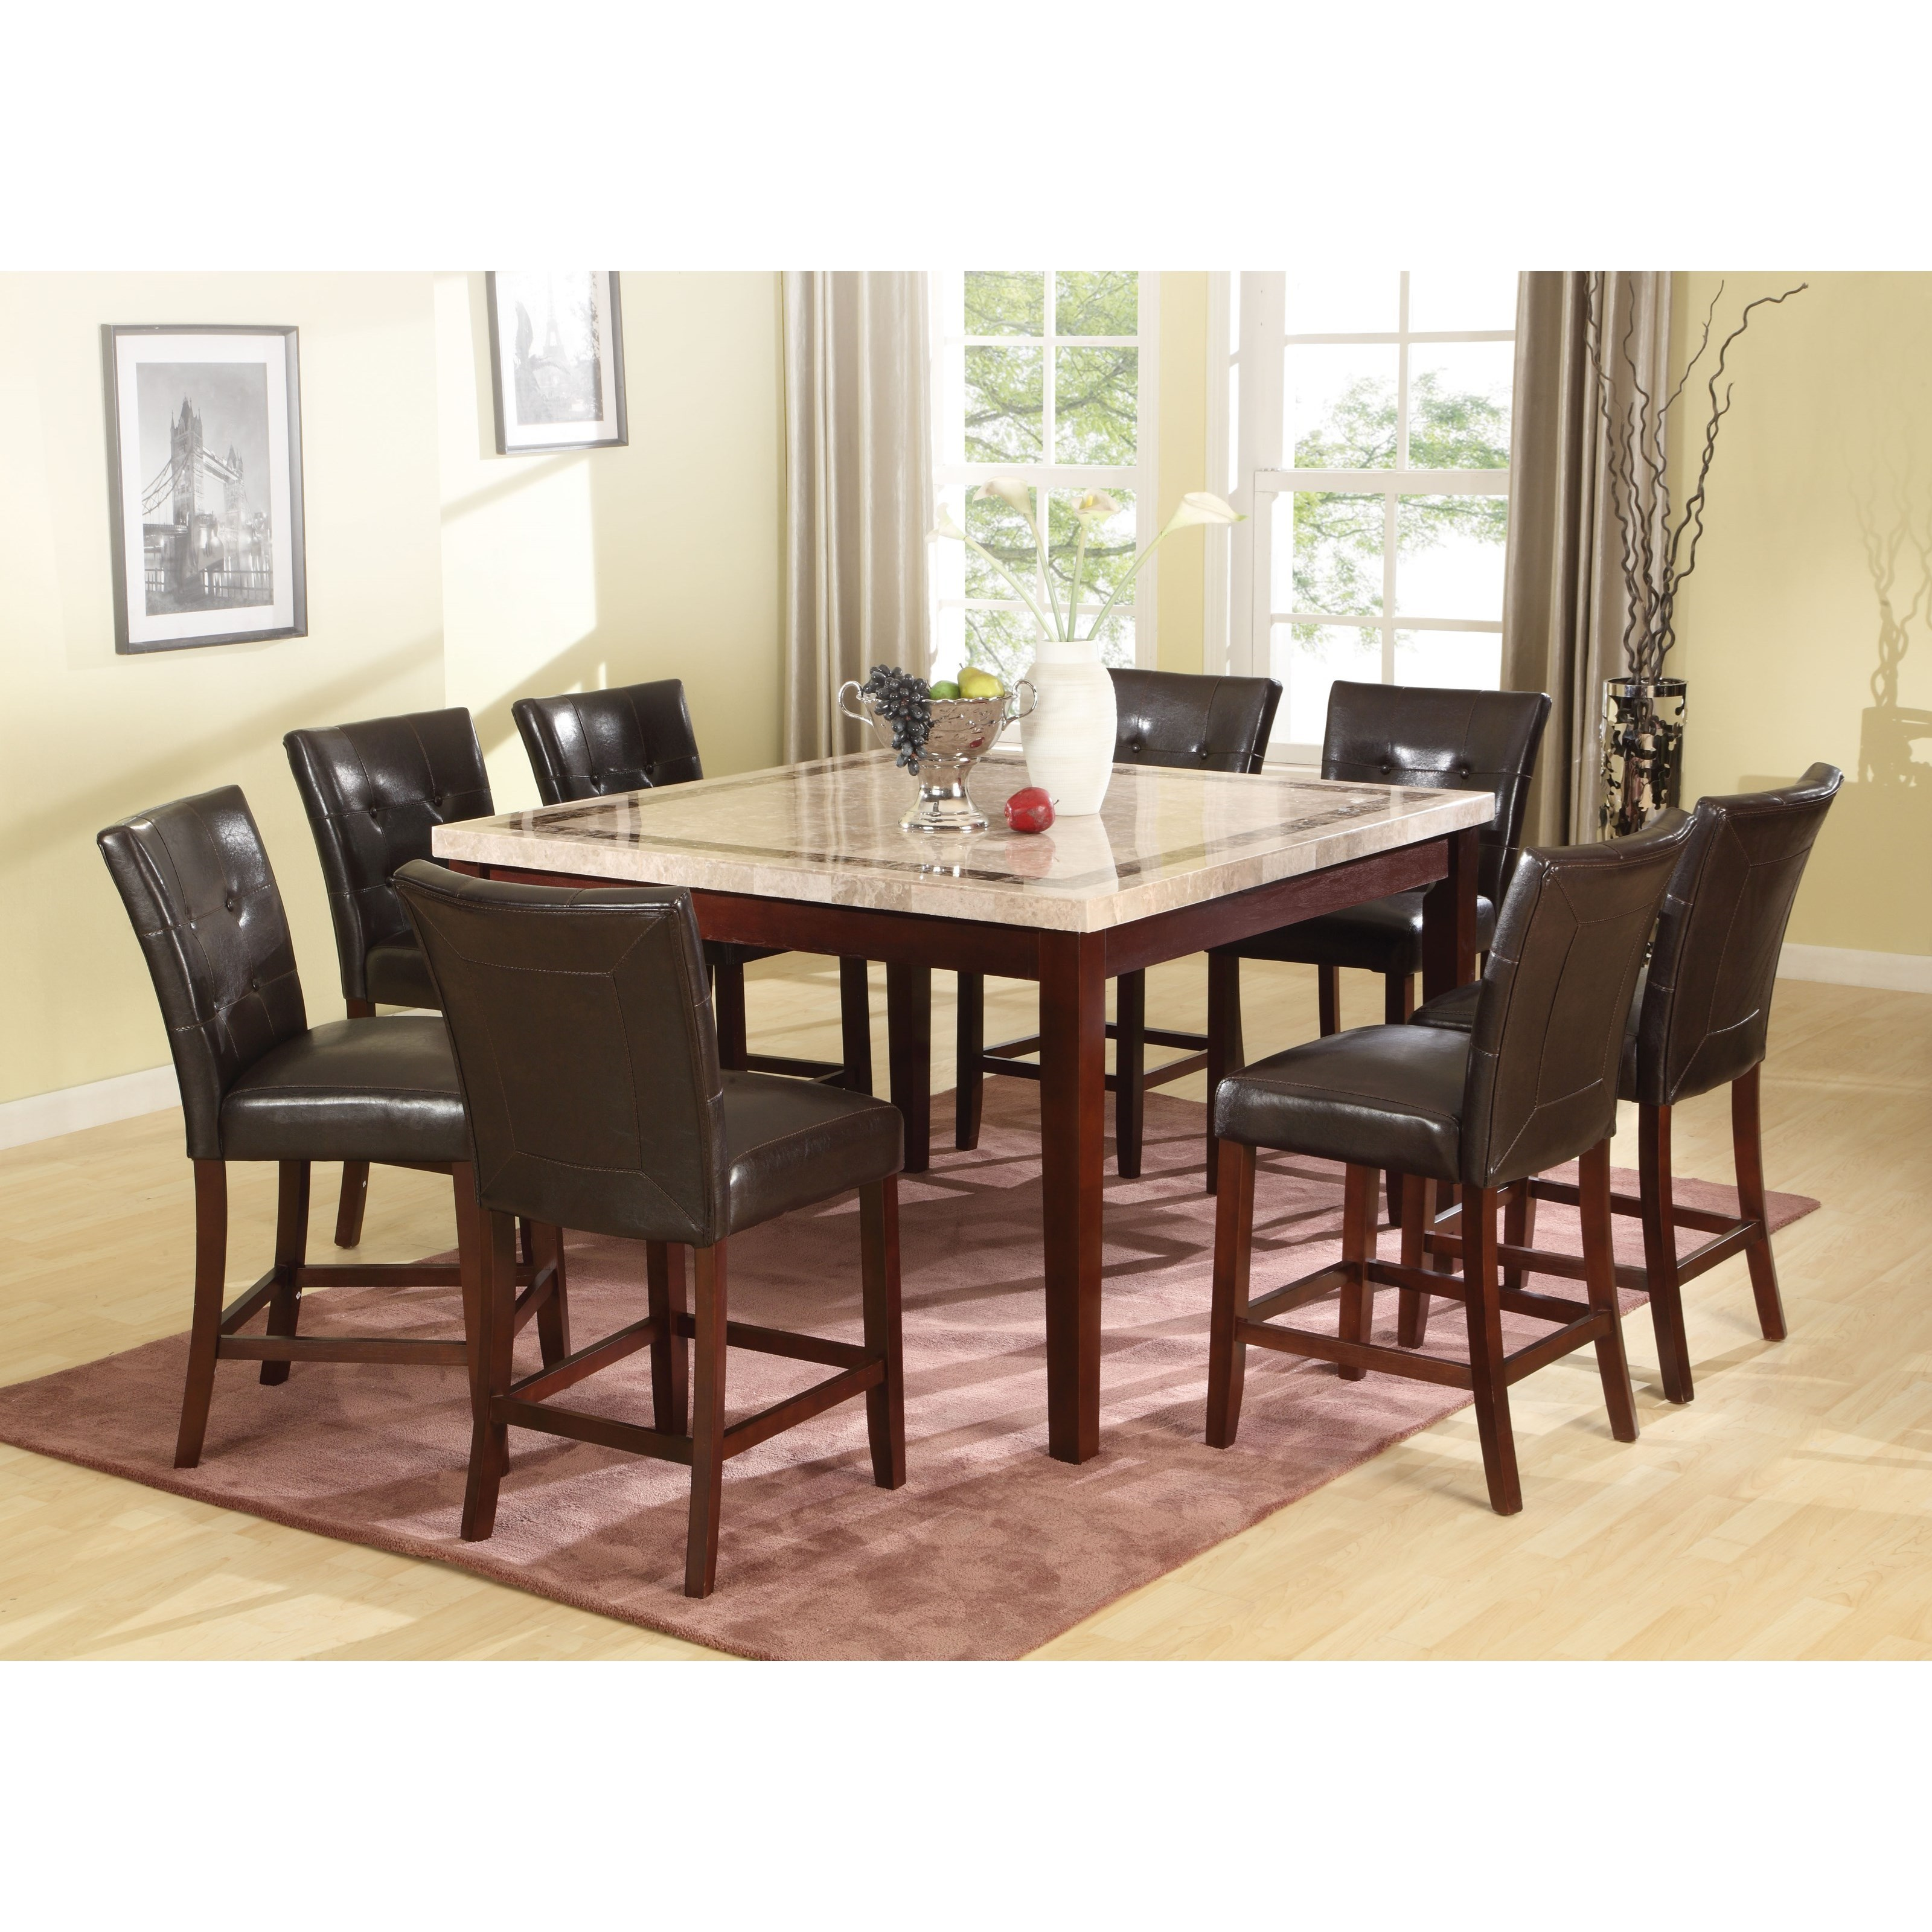 Earline Counter Height Table by Acme Furniture at Carolina Direct